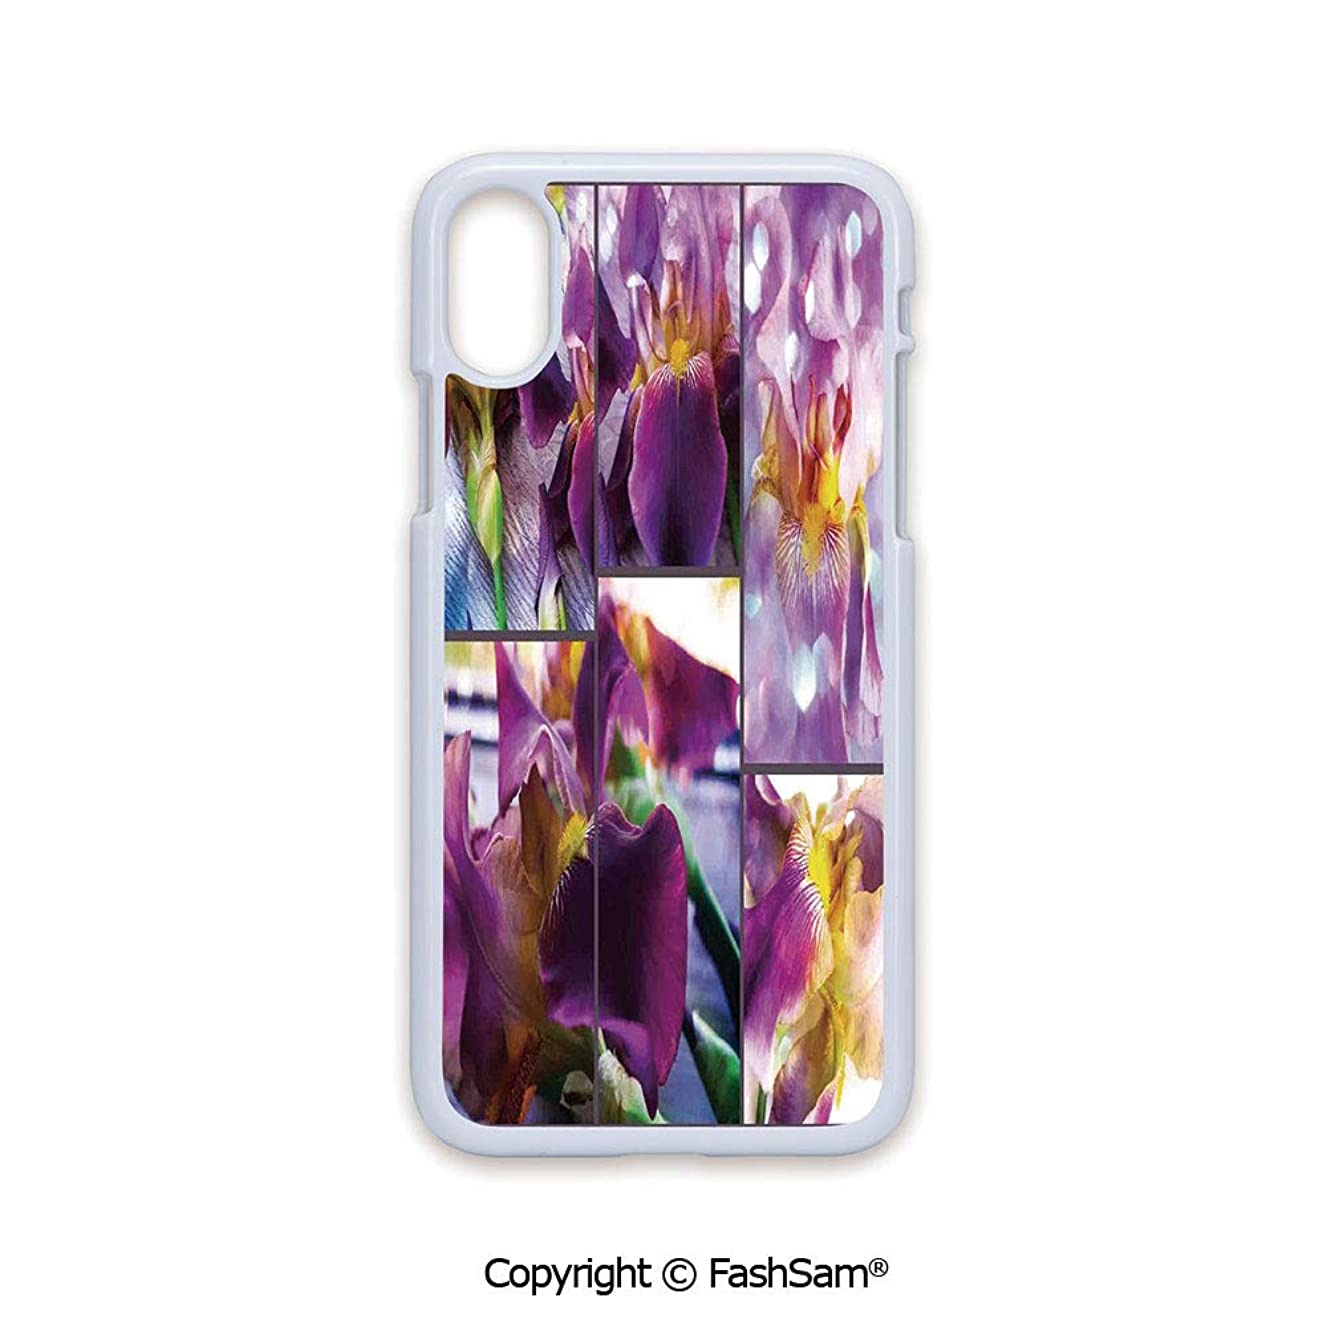 Plastic Rigid Mobile Phone case Compatible with iPhone X Black Edge Blooming Iris Flowers Orchids on Rustic Wood Natural Floral Beauty Romantic Image 2D Print Hard Plastic Phone Case